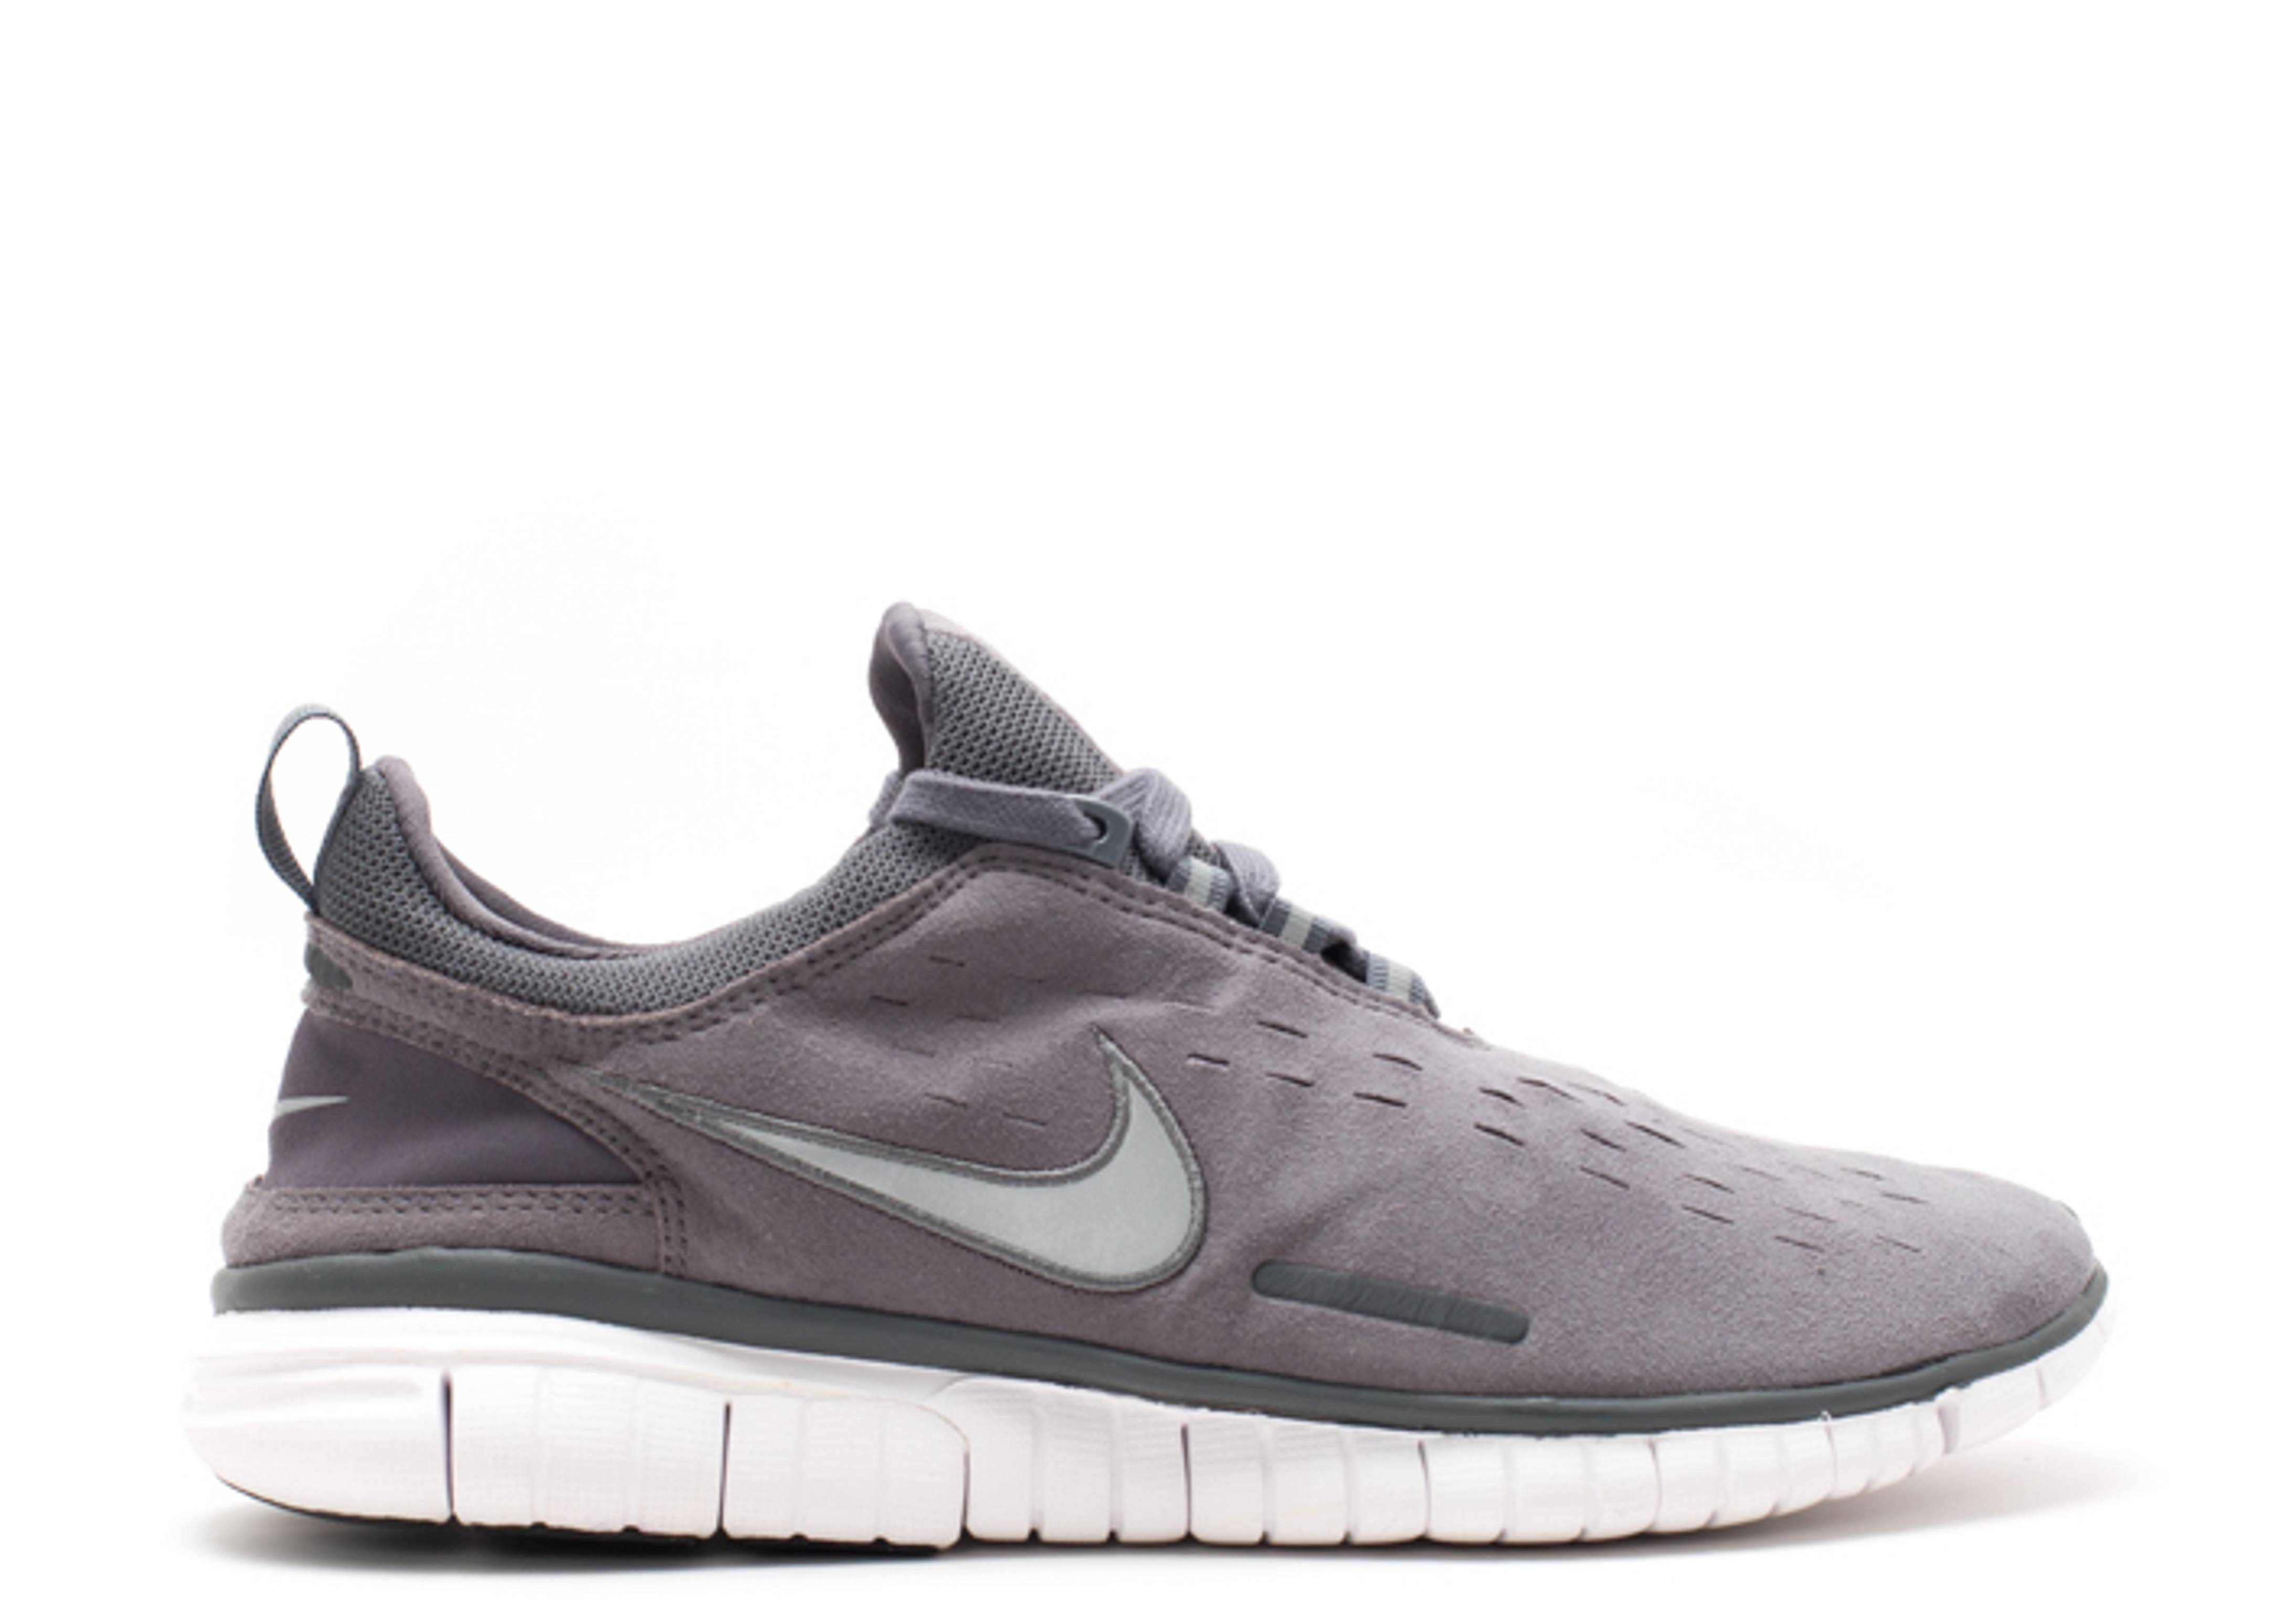 check out 08646 70521 nike. free og 14 apc sp